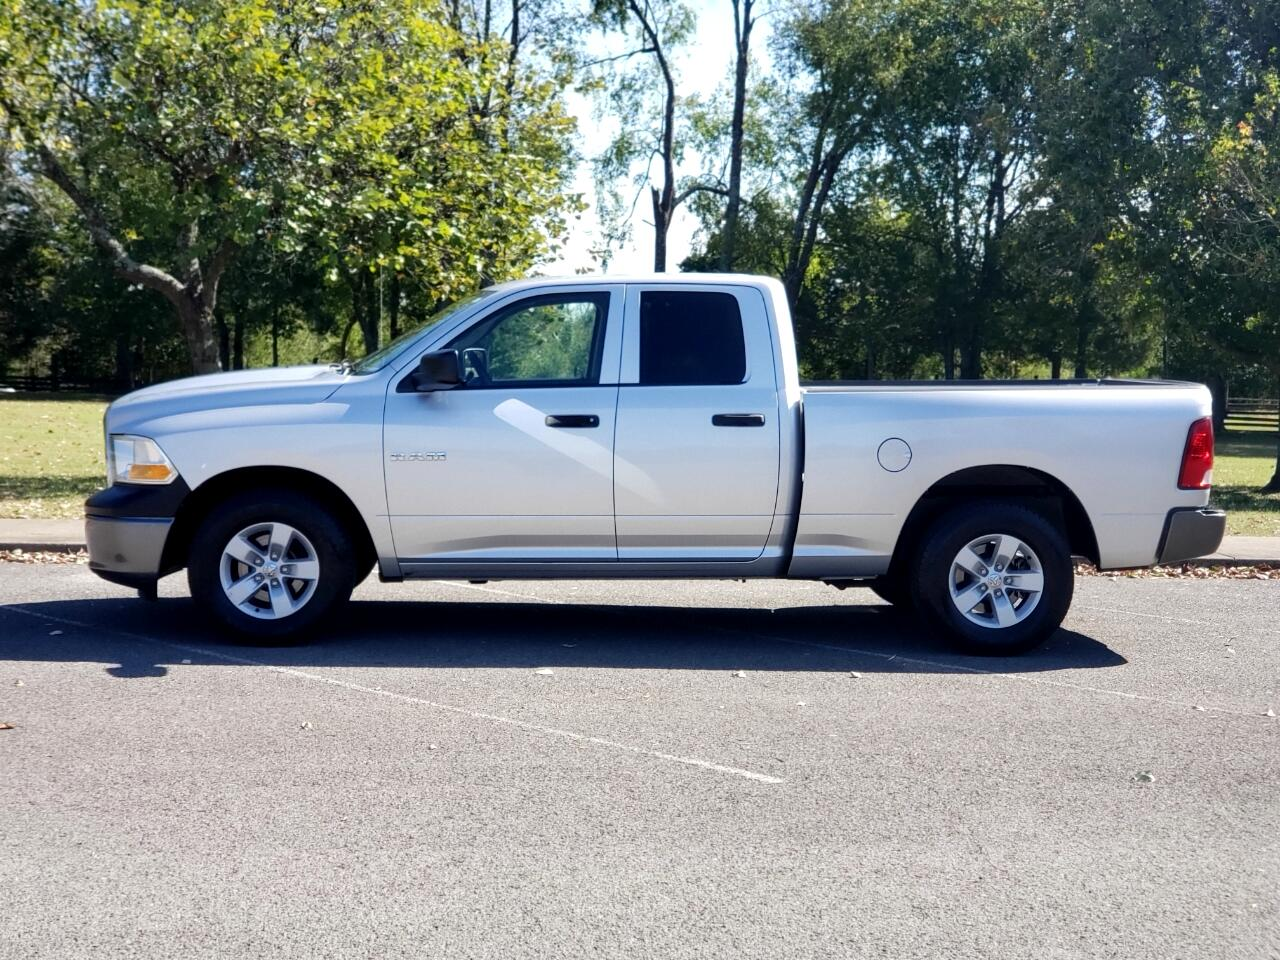 2010 Dodge Ram 1500 Quad Cab Short Bed 2WD